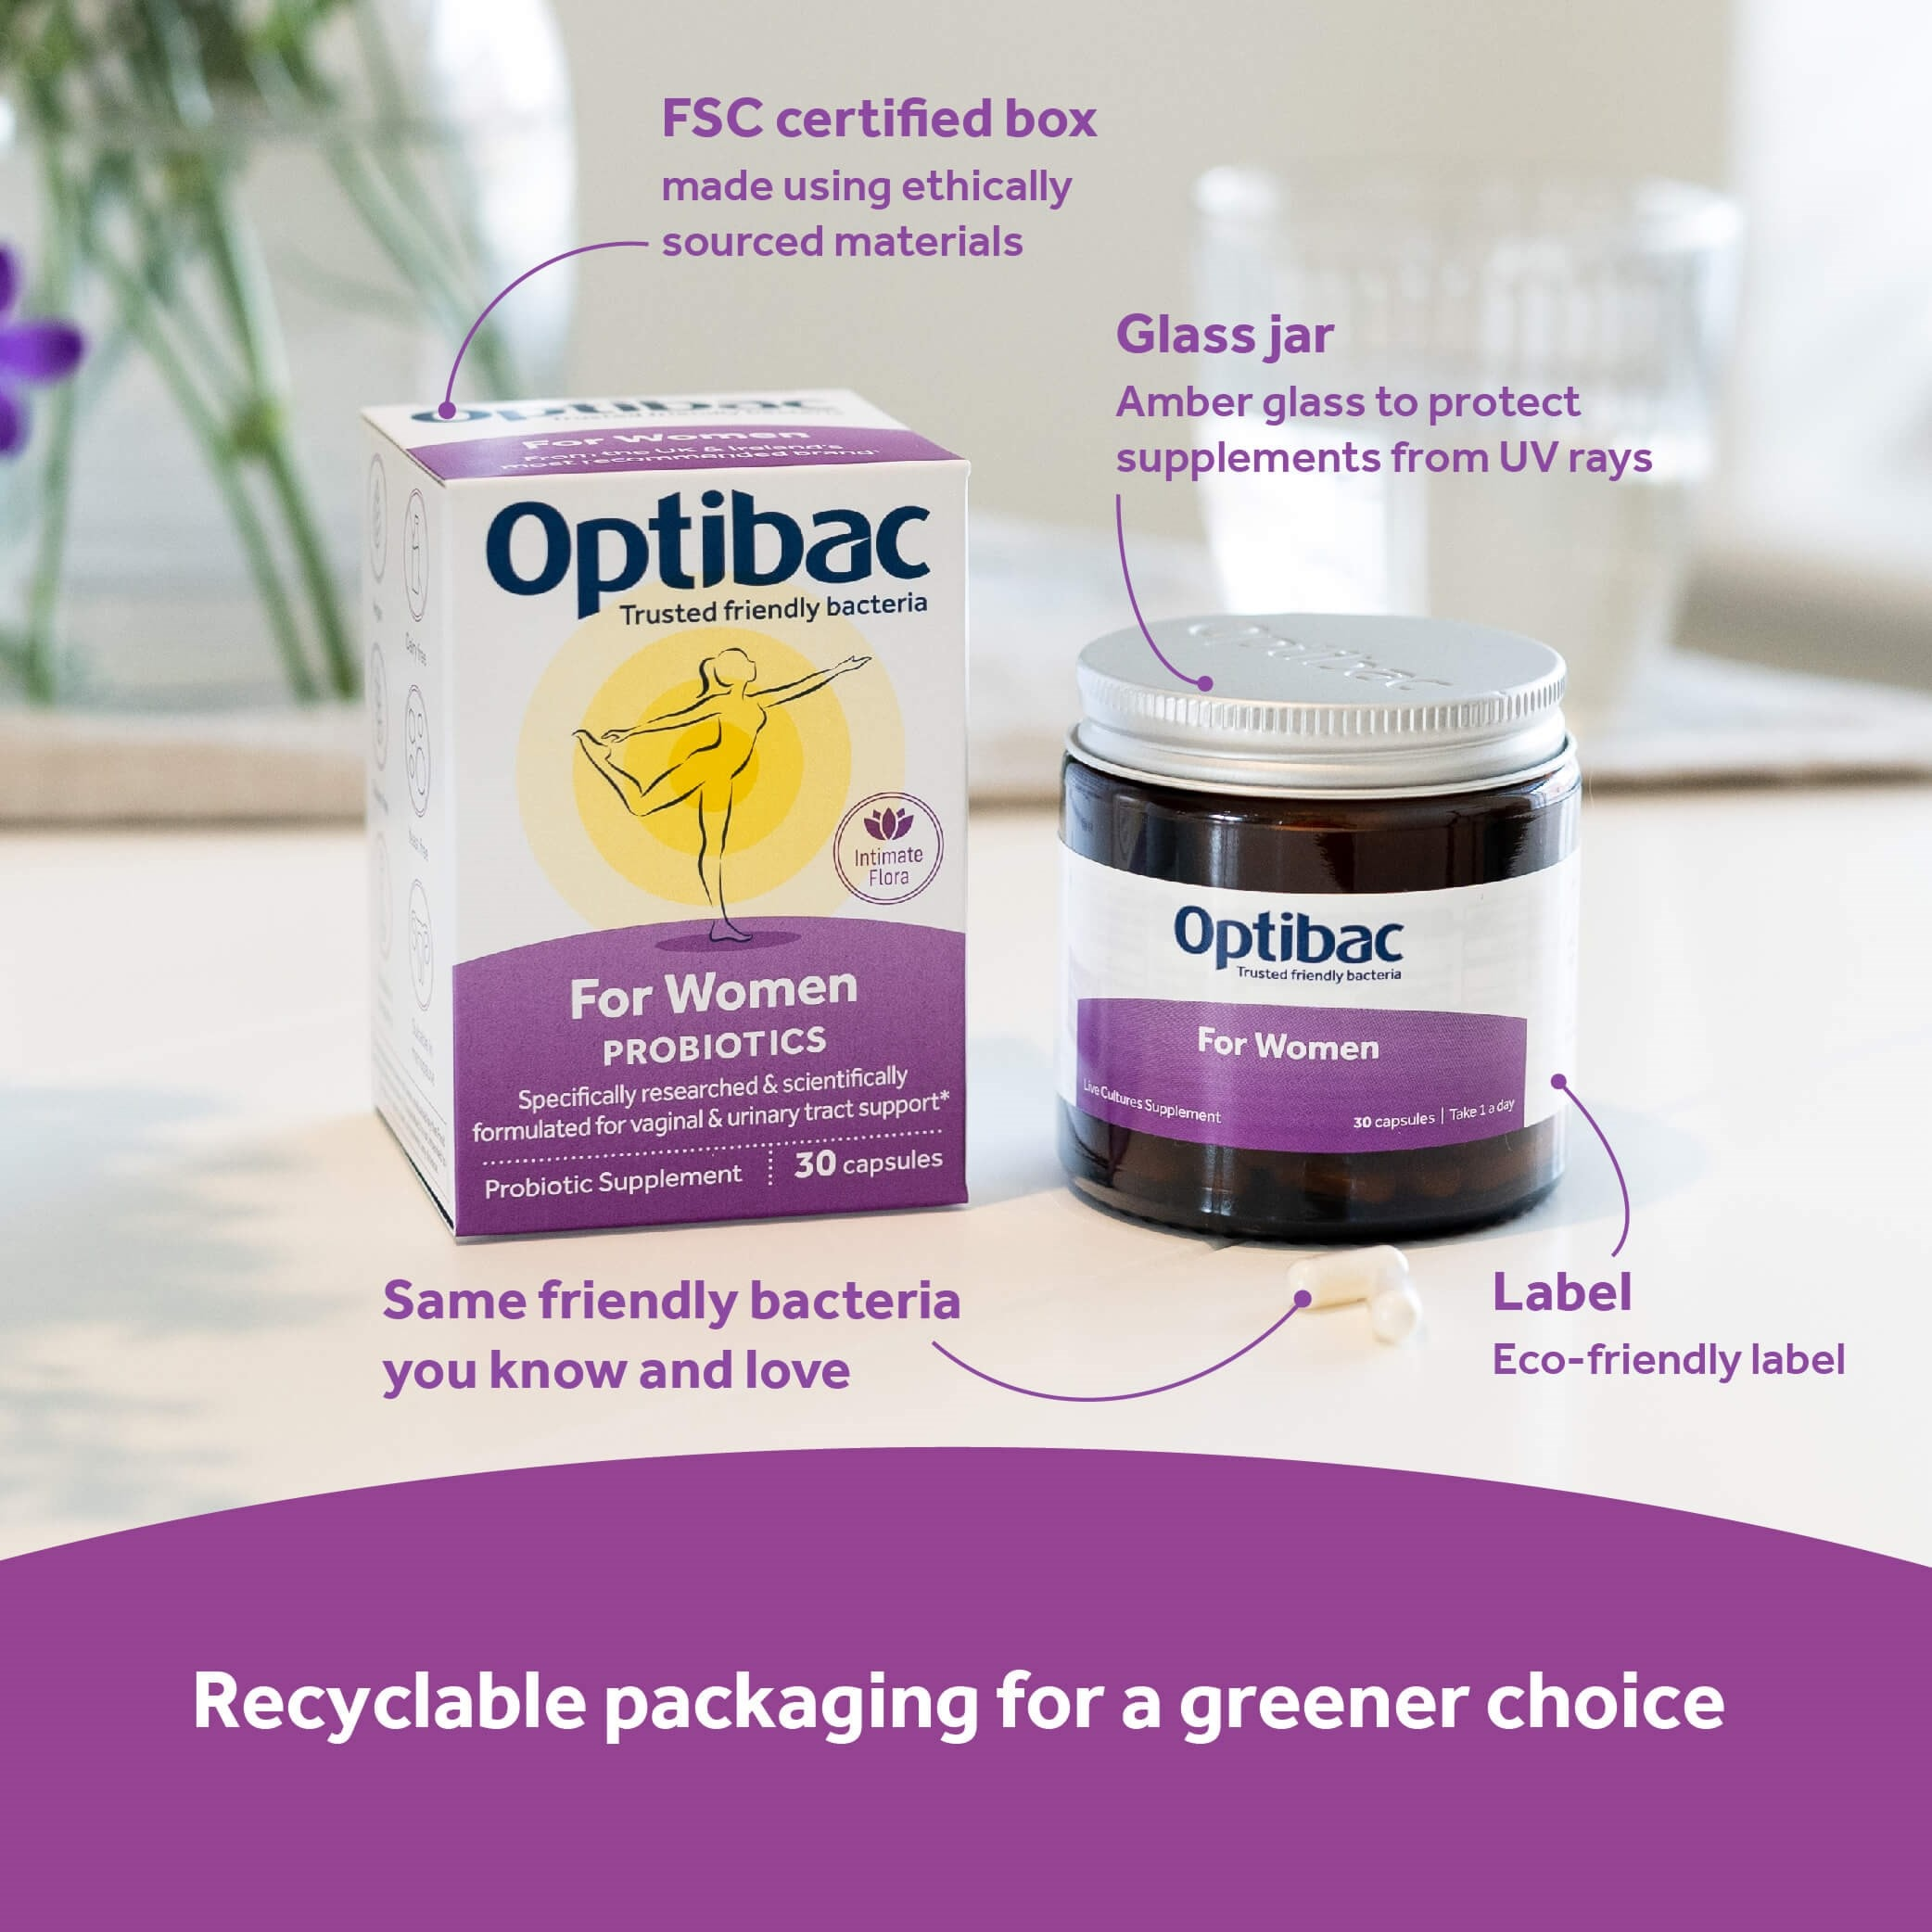 Optibac Probiotics For Women recyclable packaging